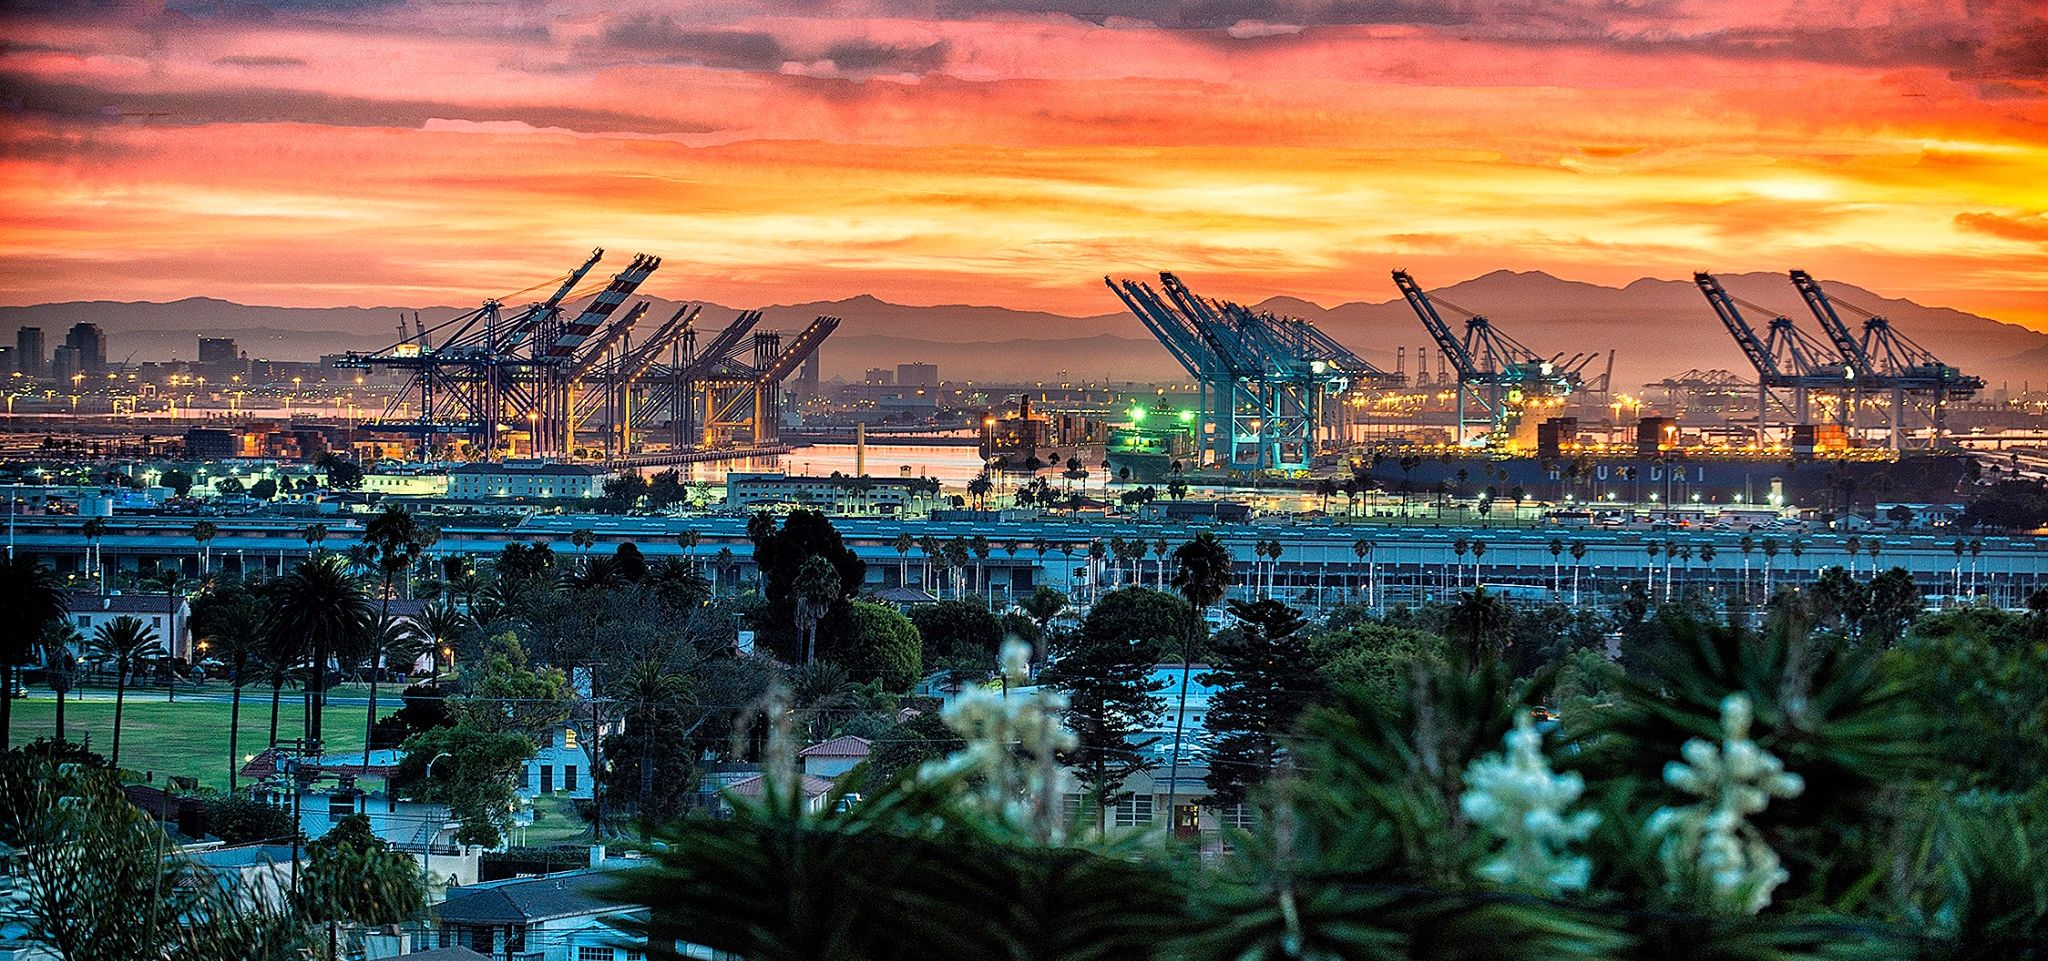 Port of Los Angeles Investor Relations - photo 1